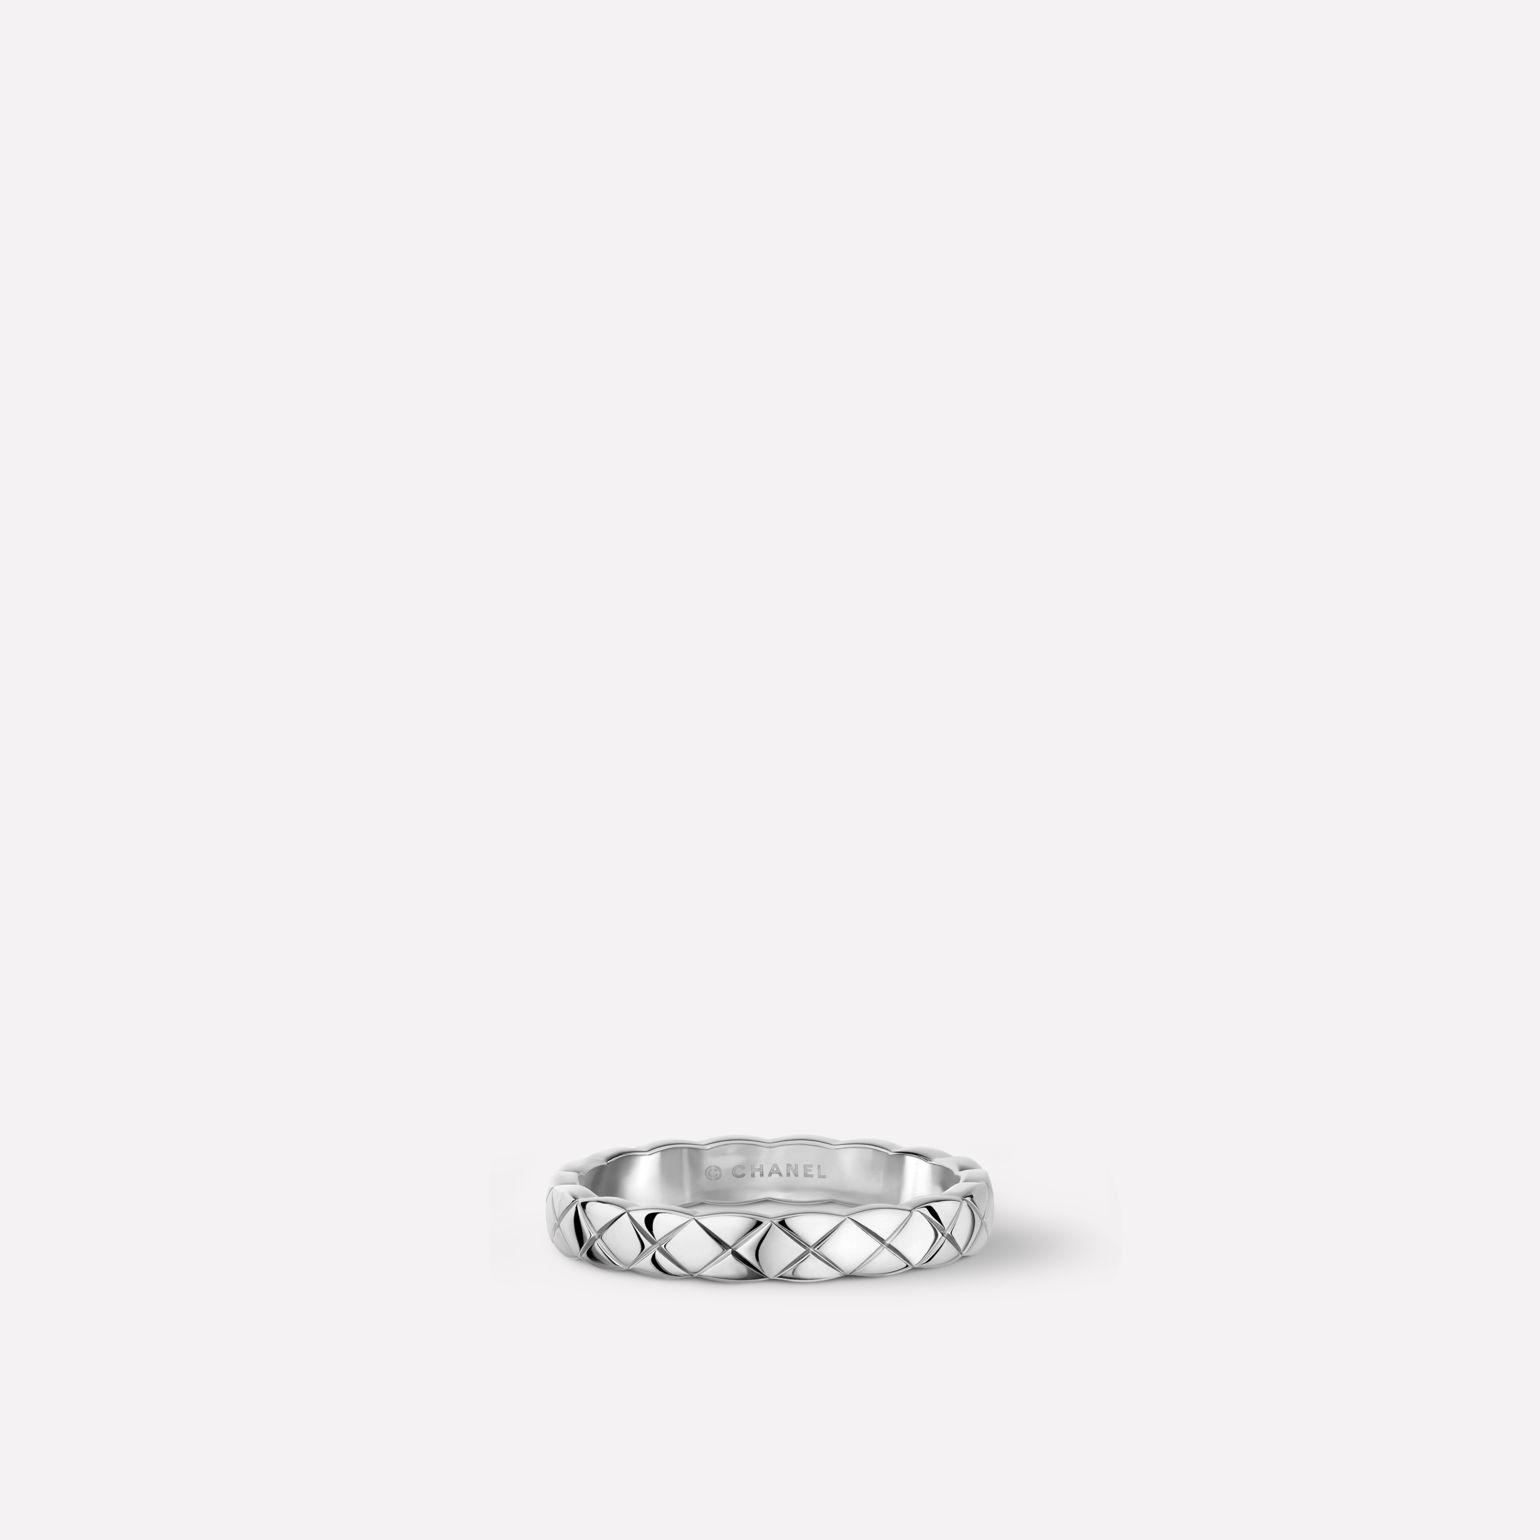 Coco Crush ring Quilted motif, mini version, 18K white gold